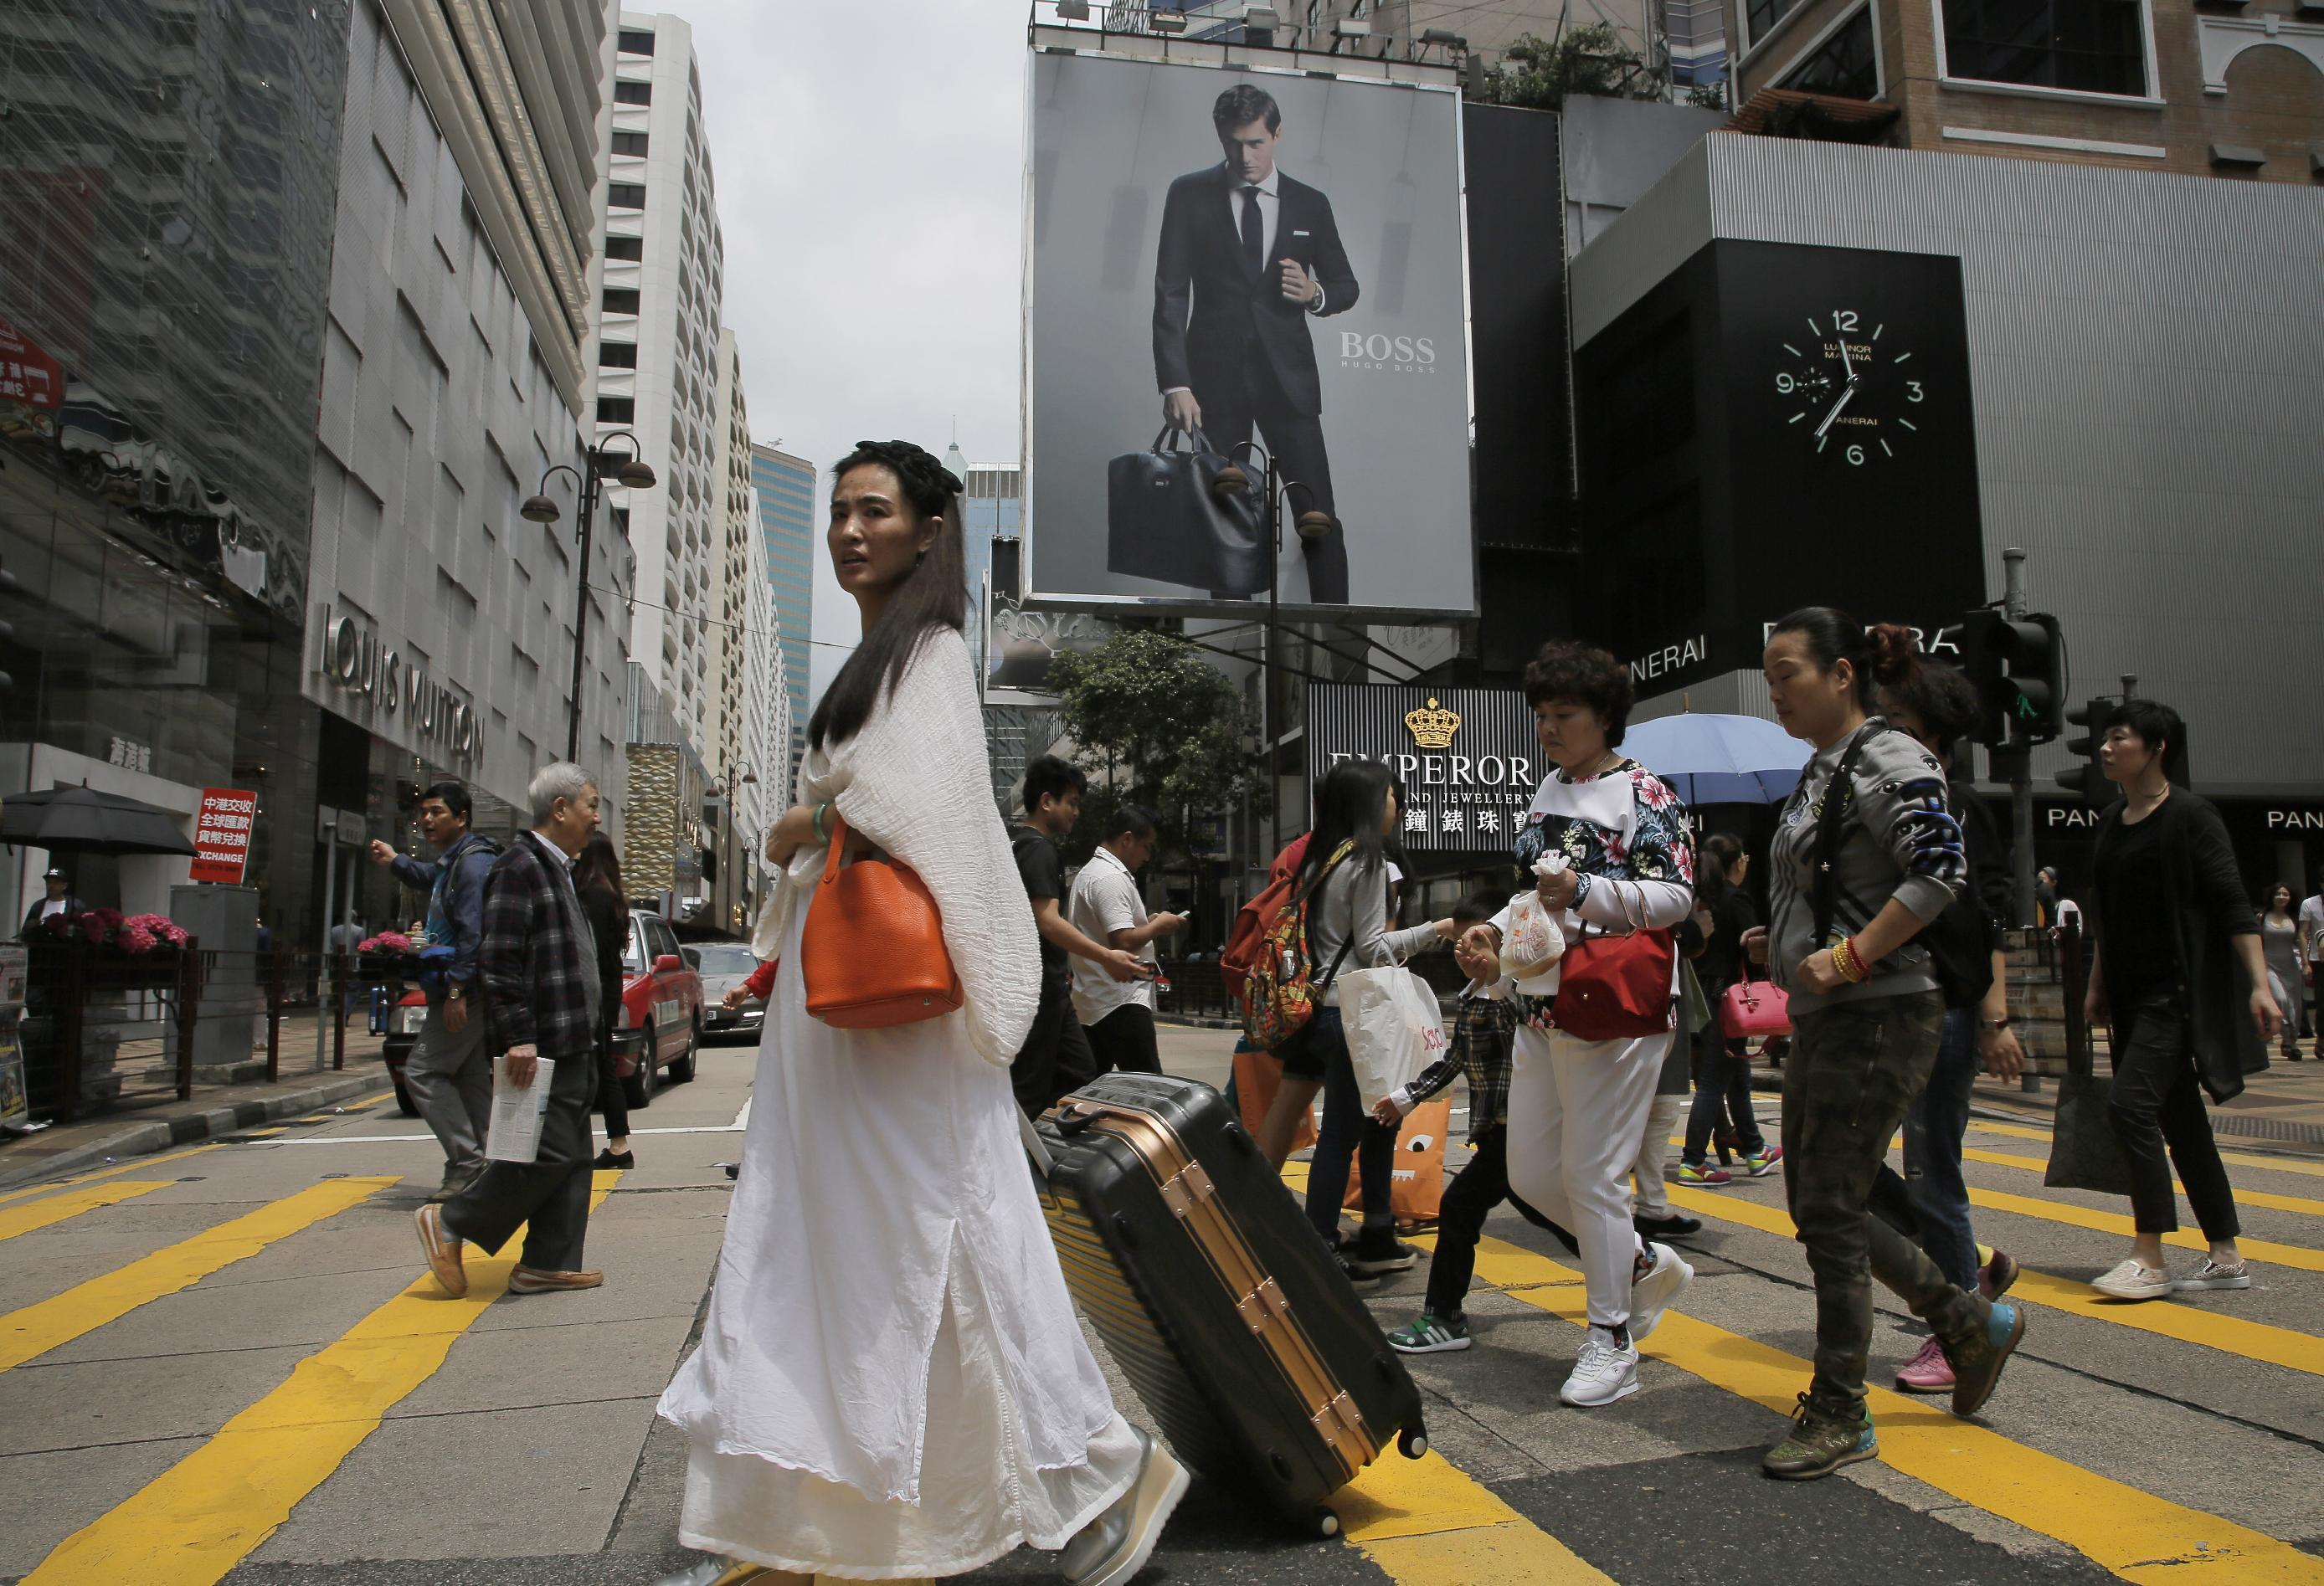 Defiant Hong Kongers resist embrace of mainland China